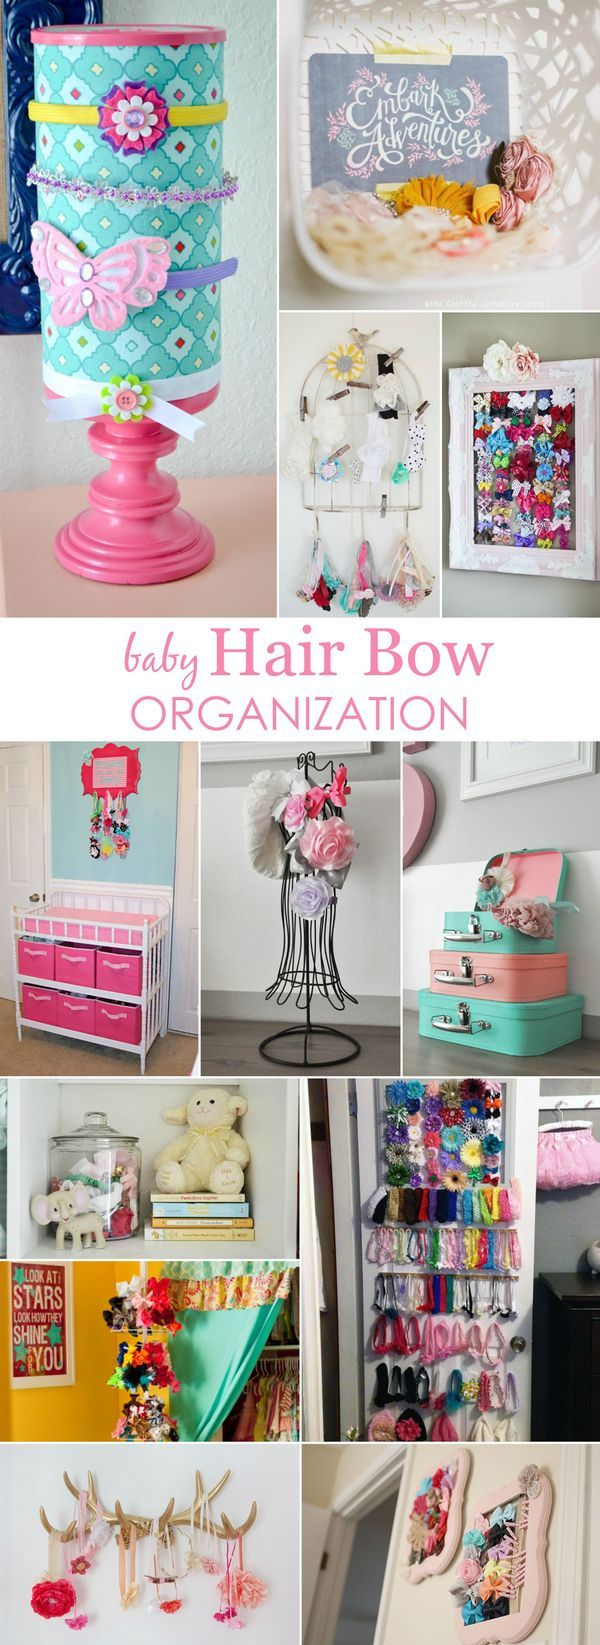 159 best nursery organization ideas {organizing tips and diy hacks